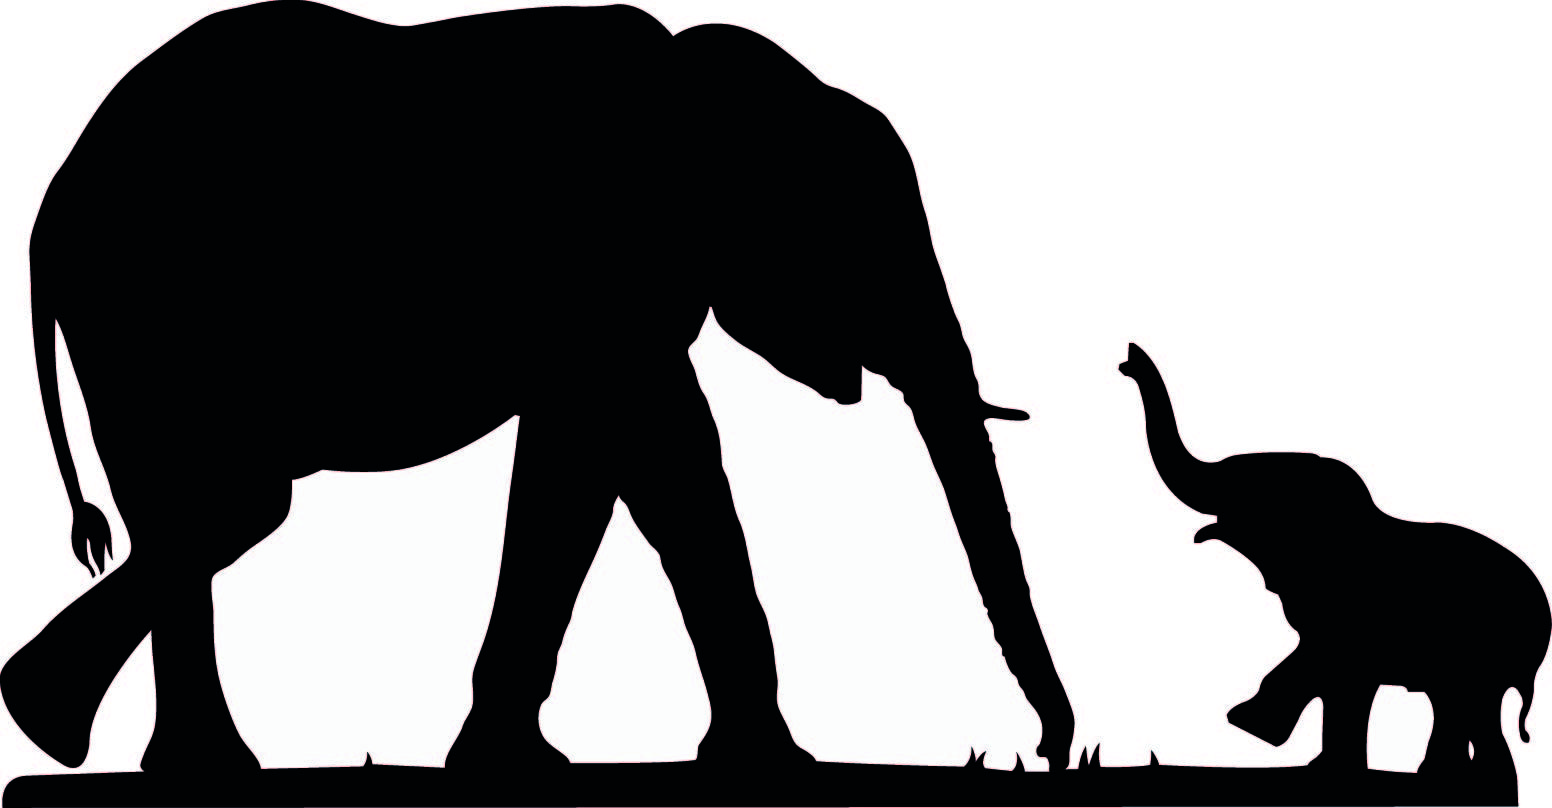 Baby Elephant Silhouette Images & Pictures - Becuo ...